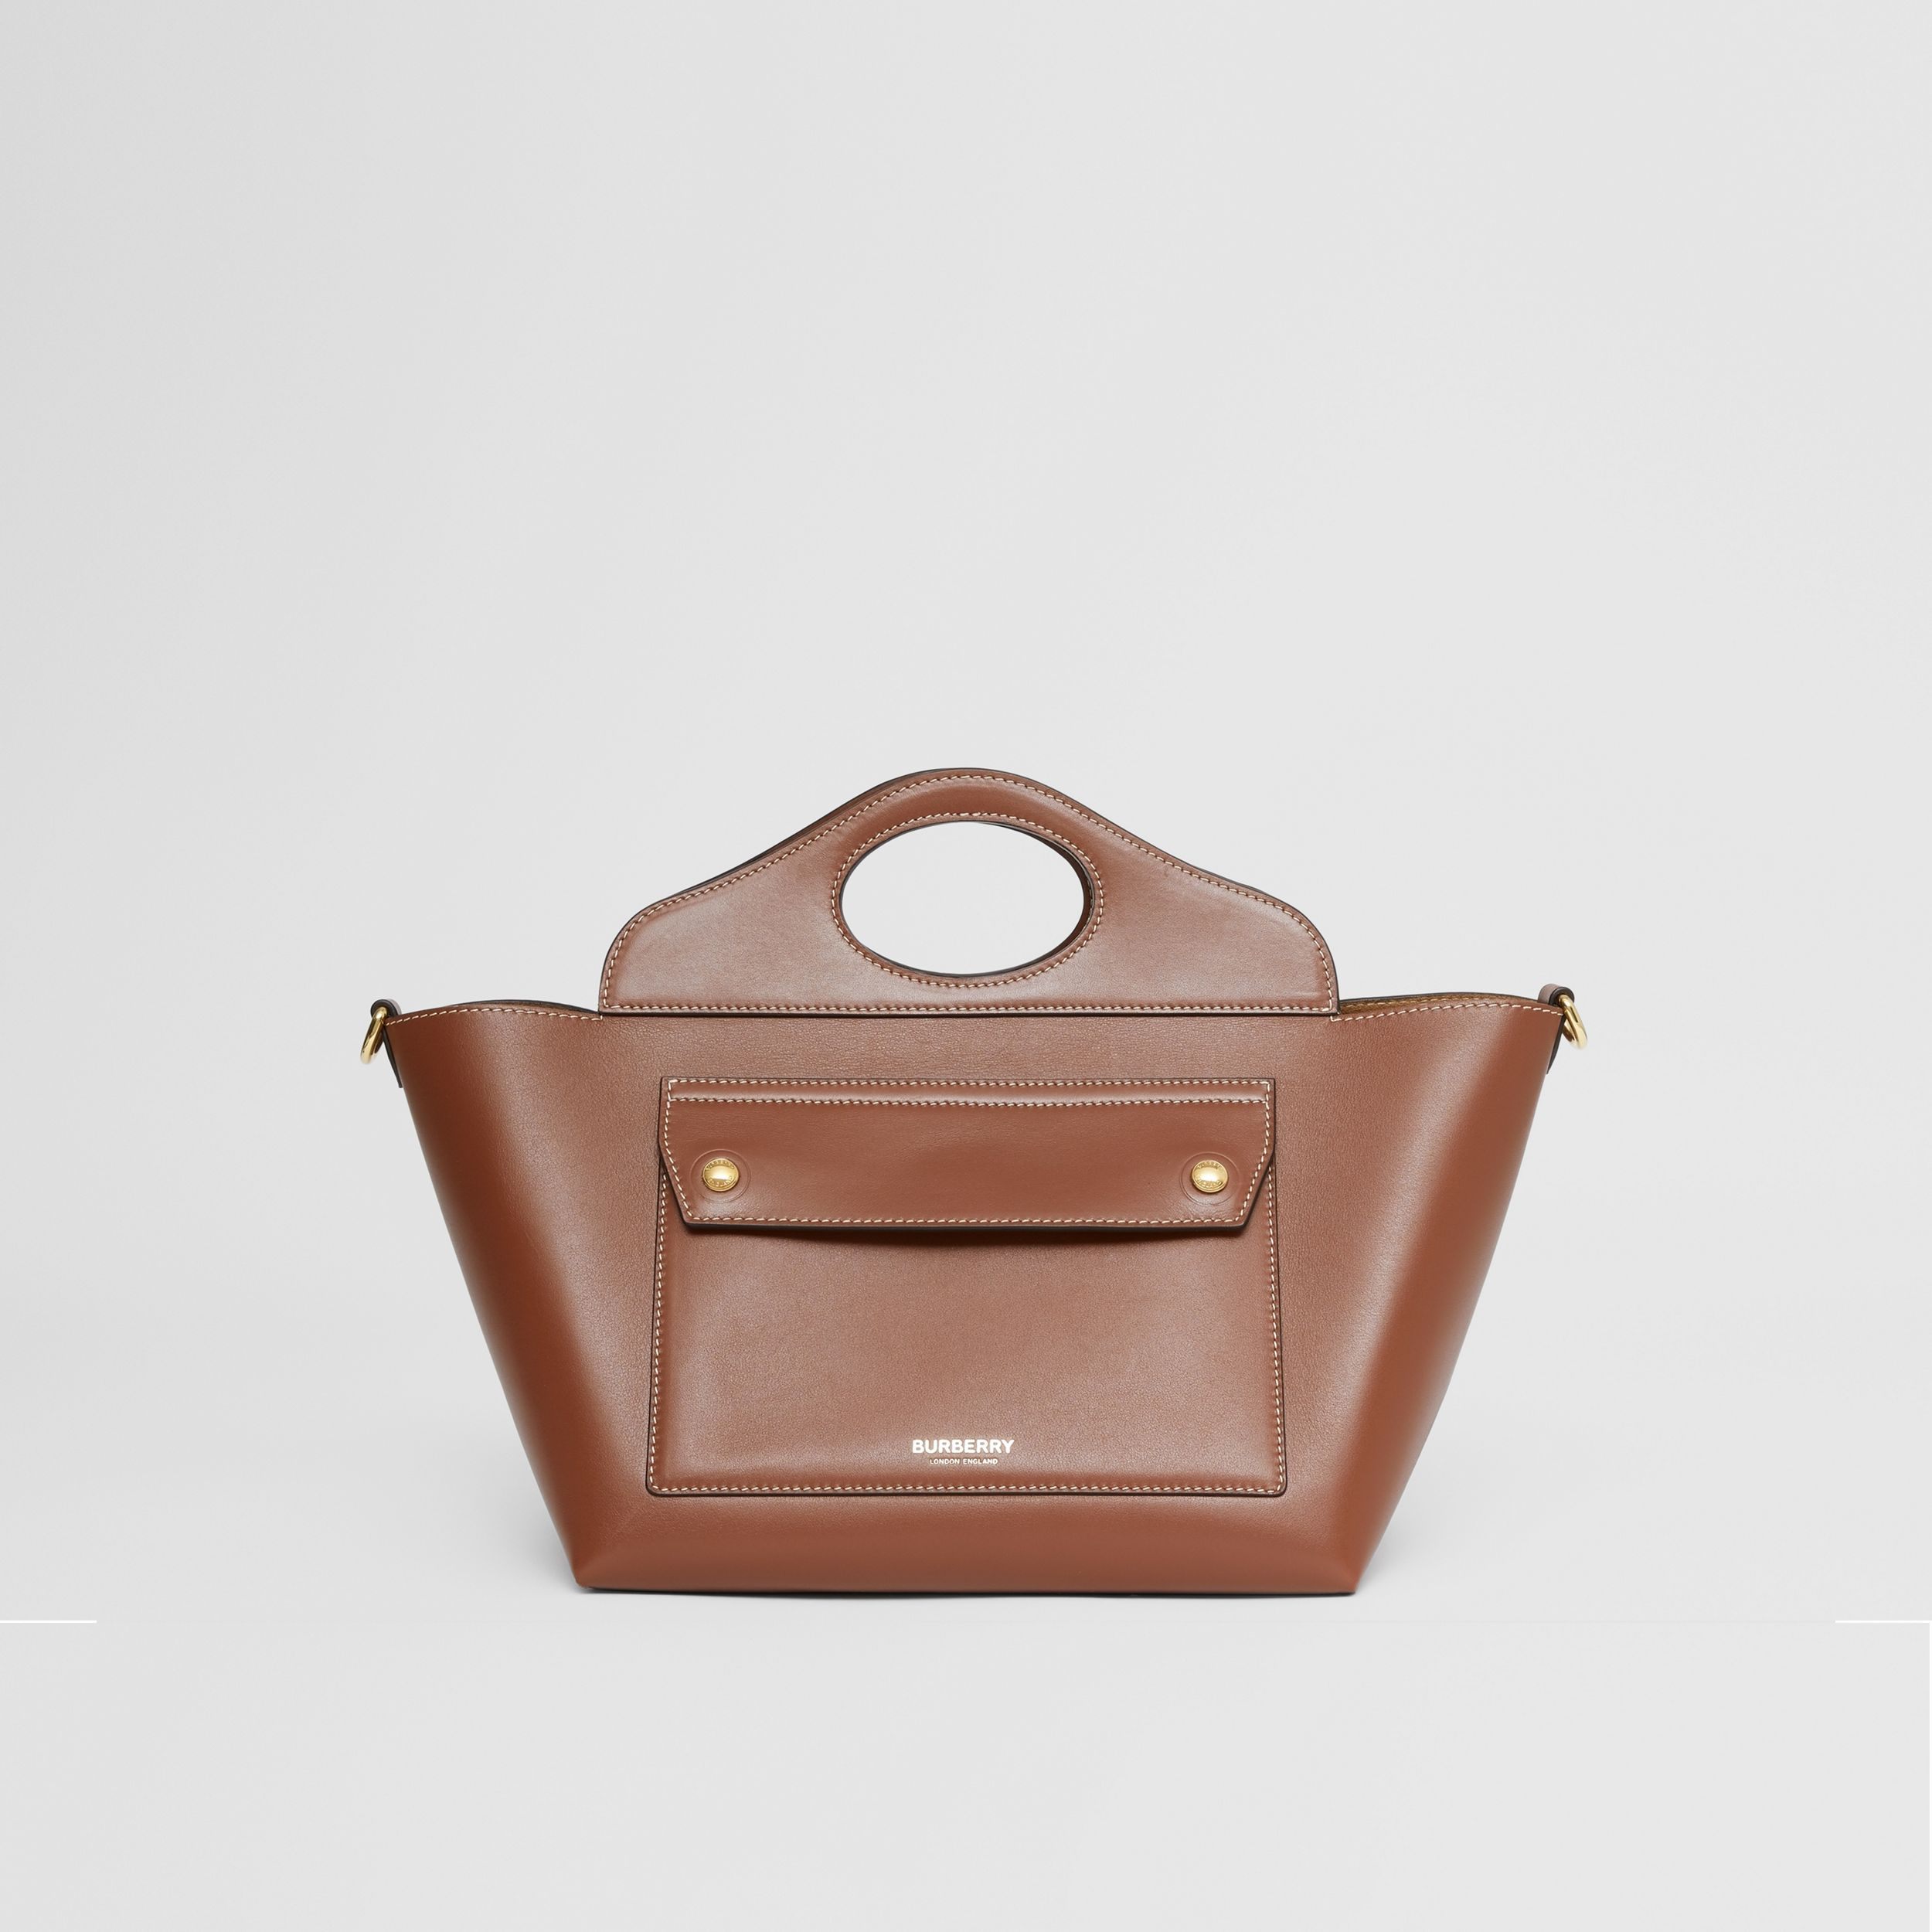 Mini Leather Soft Pocket Tote in Tan - Women | Burberry - 1